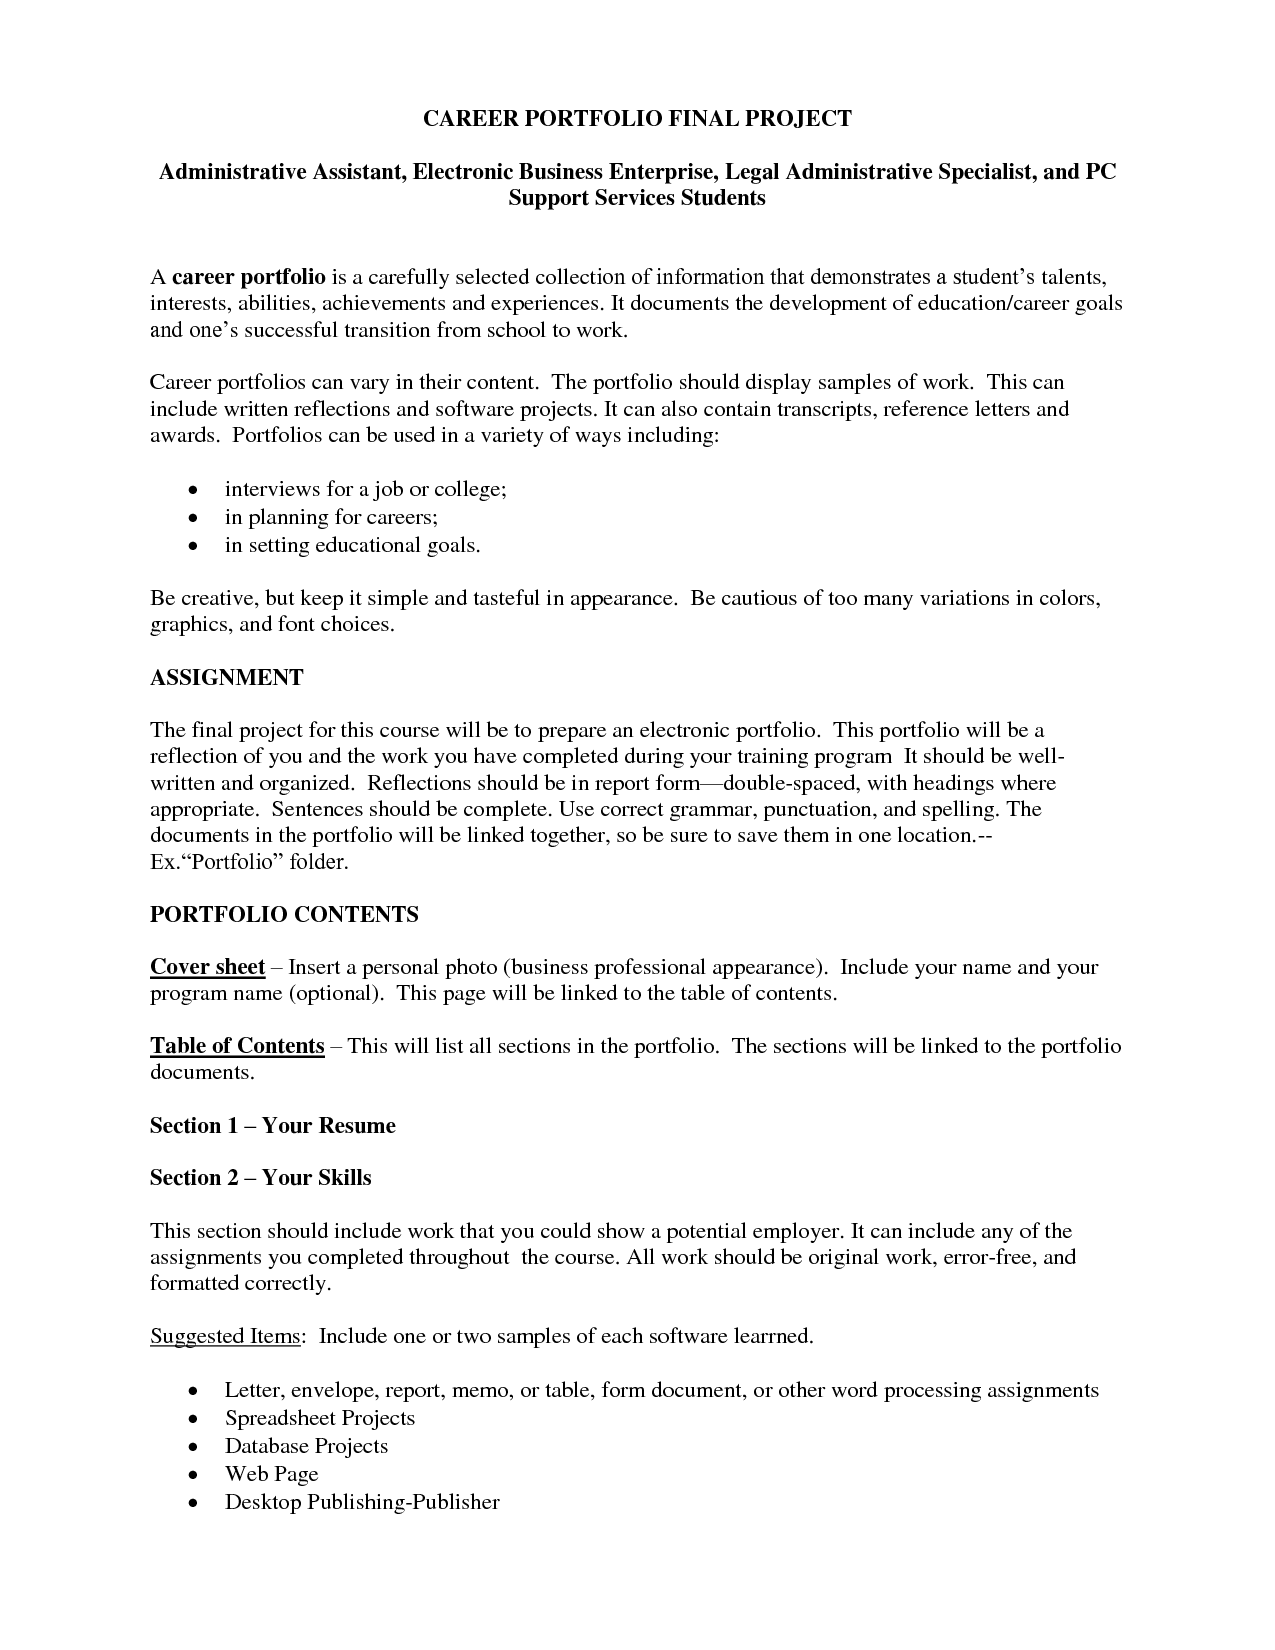 Legal Administrative Resume Samples  HttpErsumeComLegal